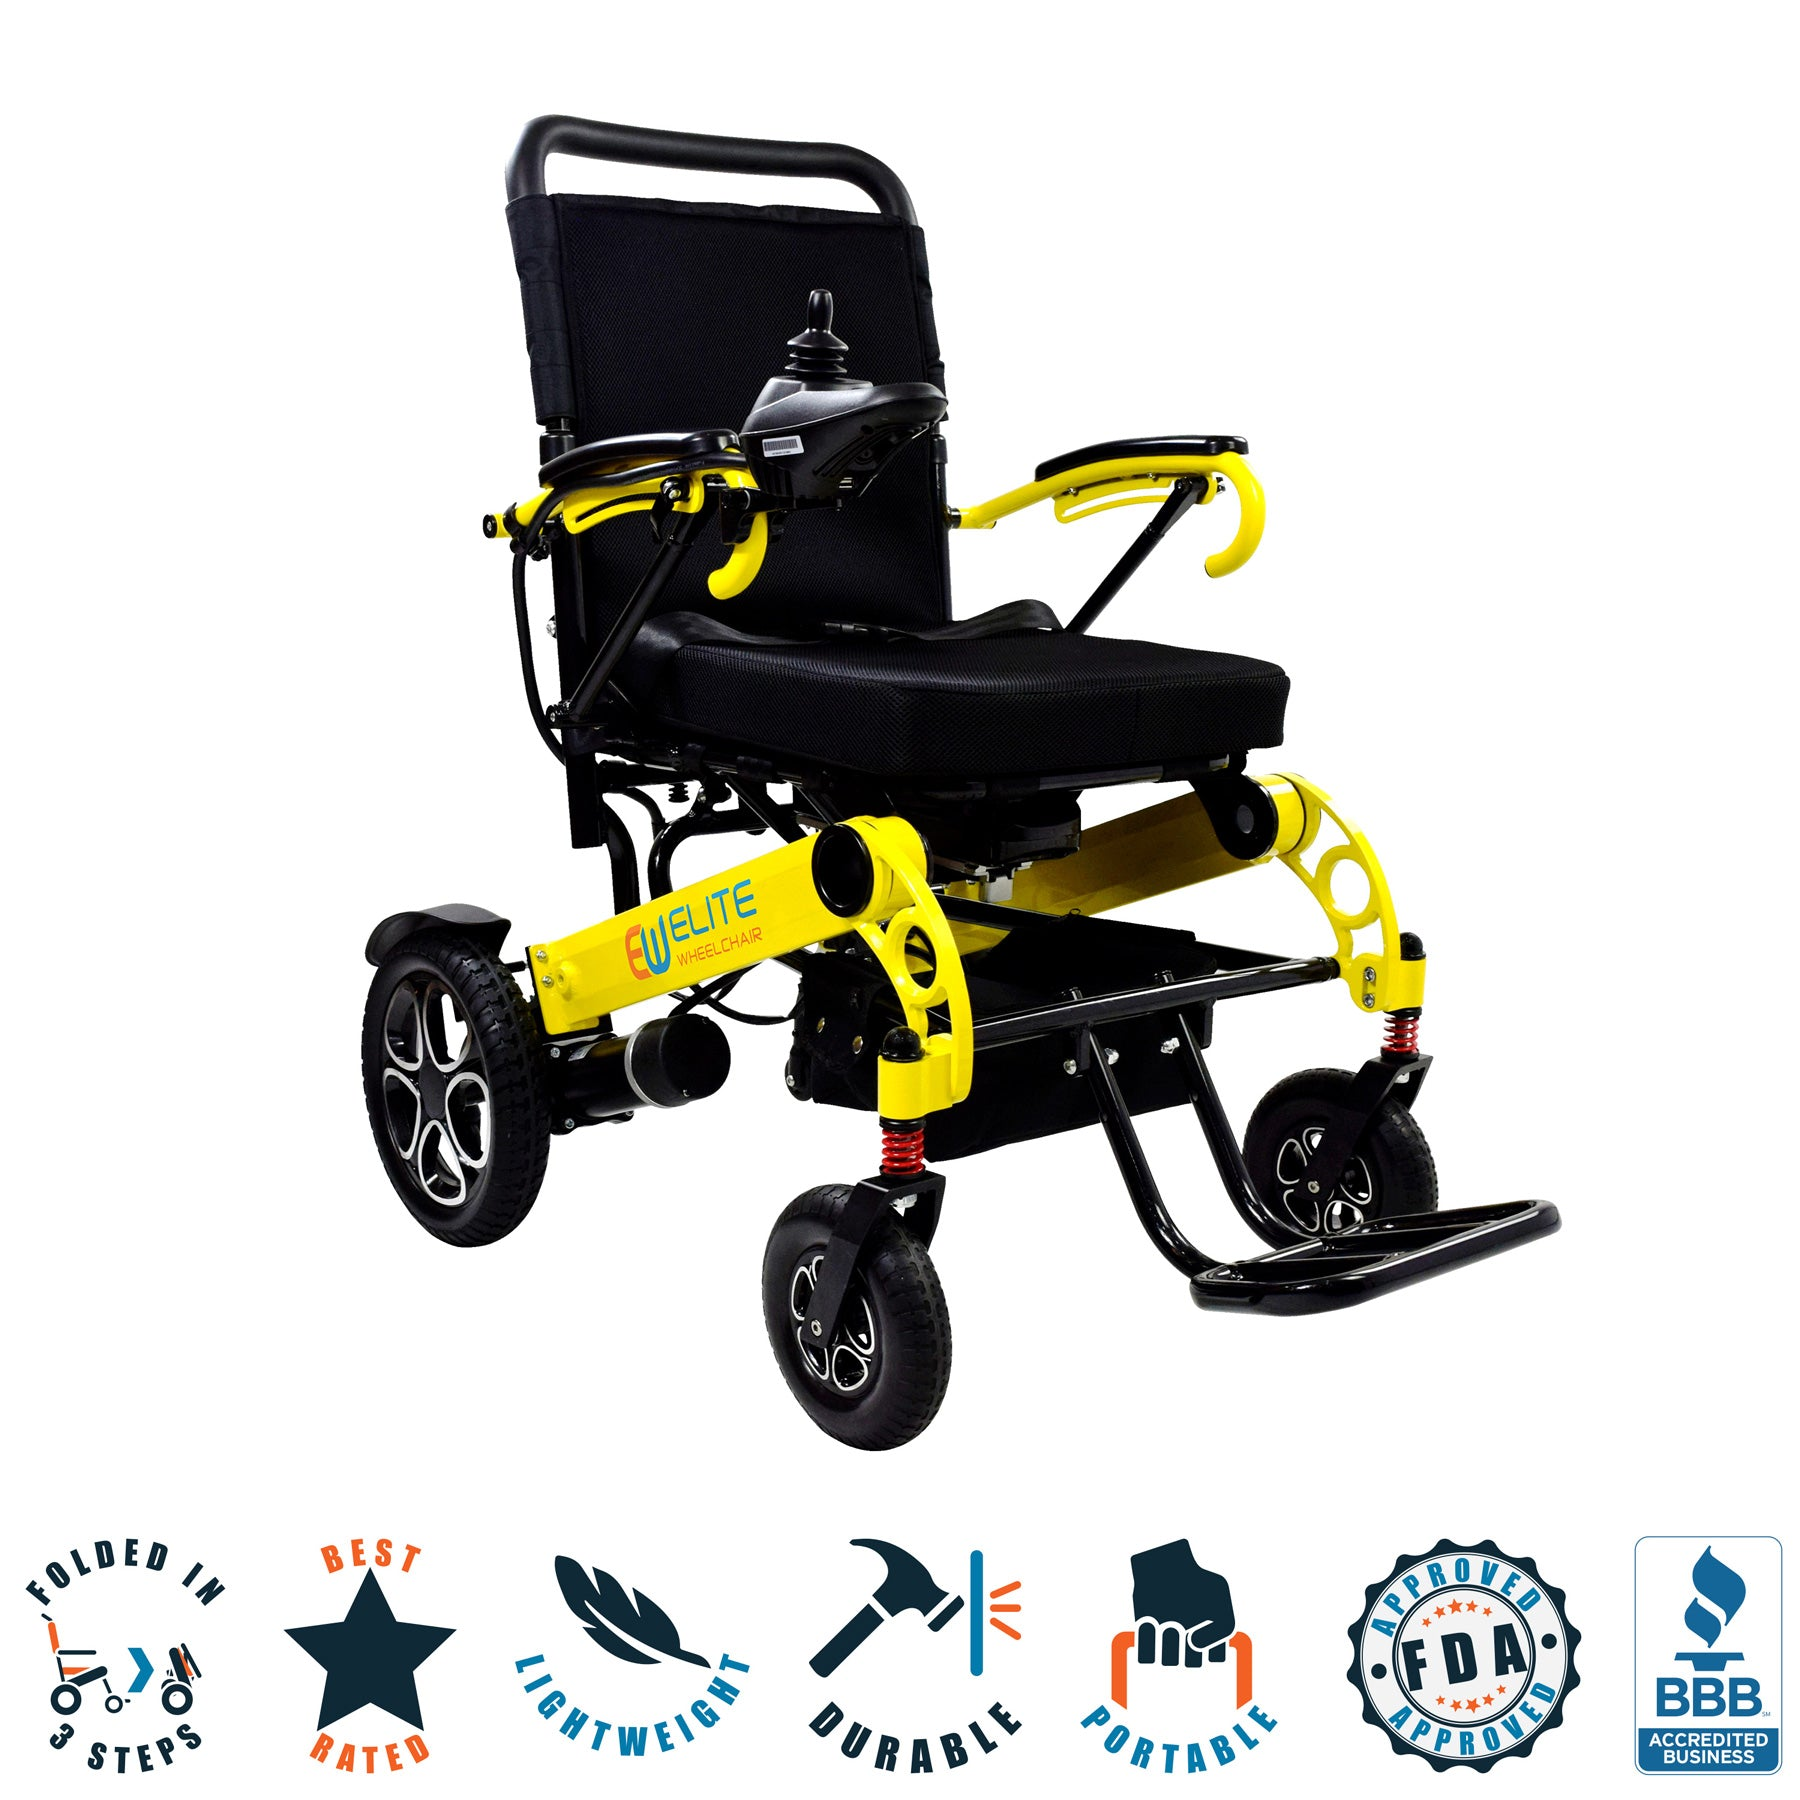 Folding electric wheelchair, model W5521 yellow. Large and wide seat.